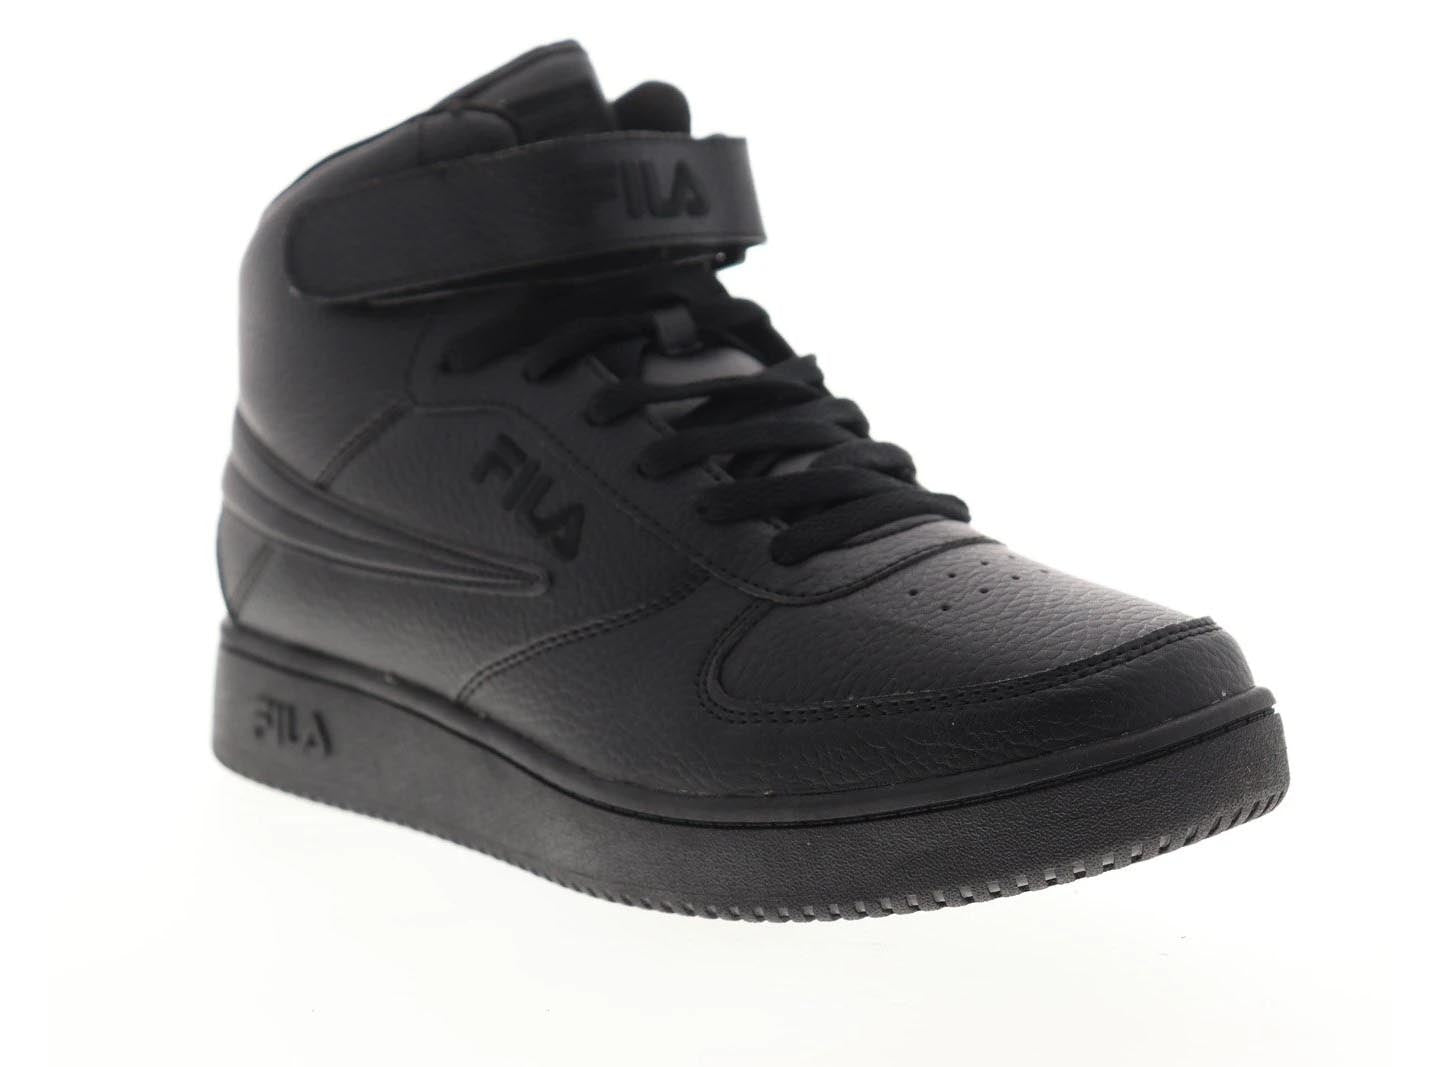 Fila A High Men's Black Synthetic Lace Up Low Top Sneakers Shoes 1CM00540